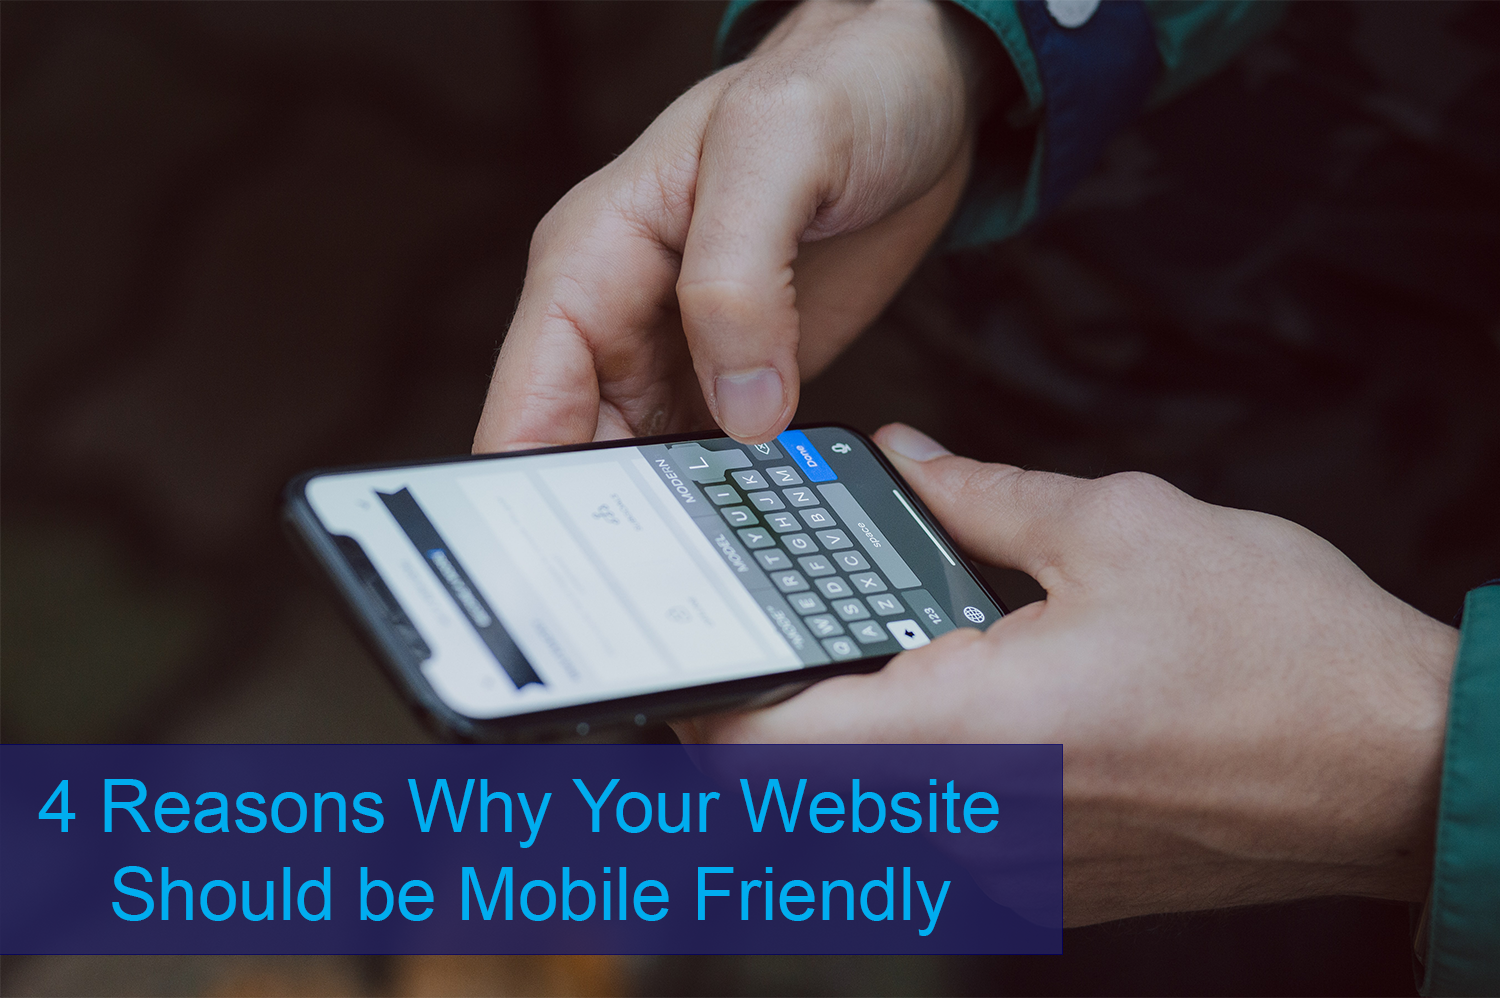 Person holding smartphone and looking up mobile friendly website.